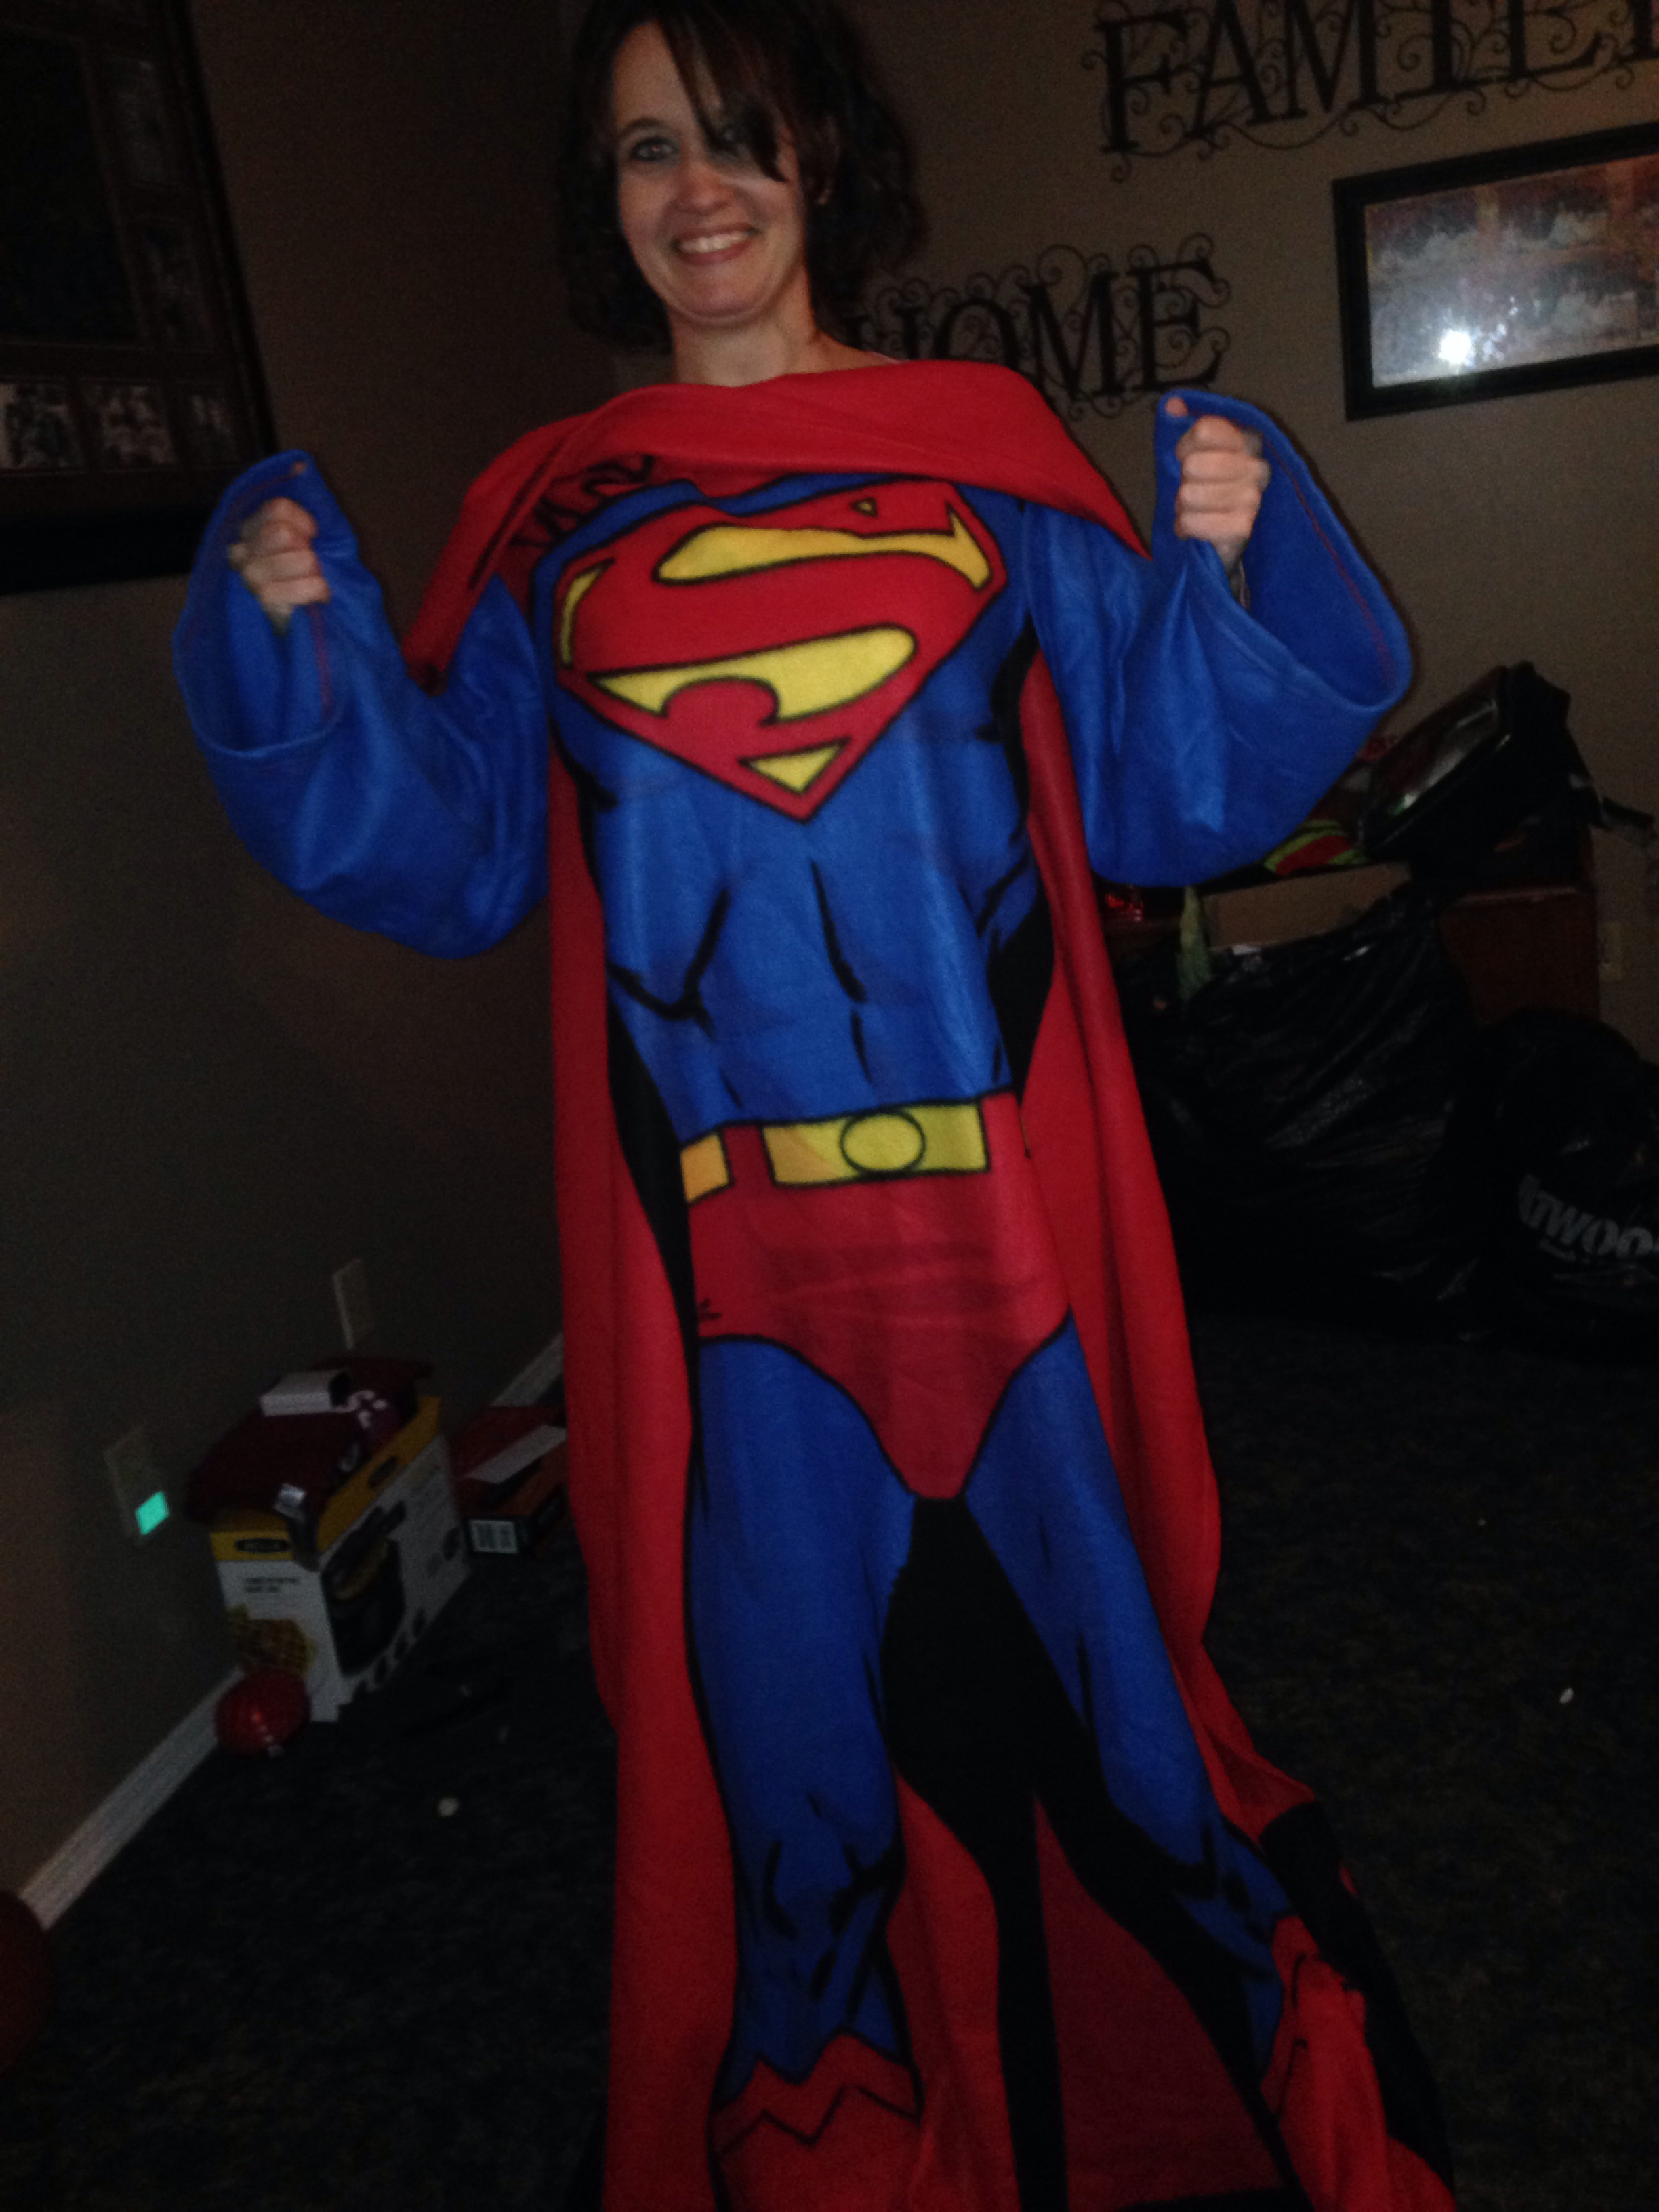 Superman Snuggie, Jennifer Edwards, Clarksville